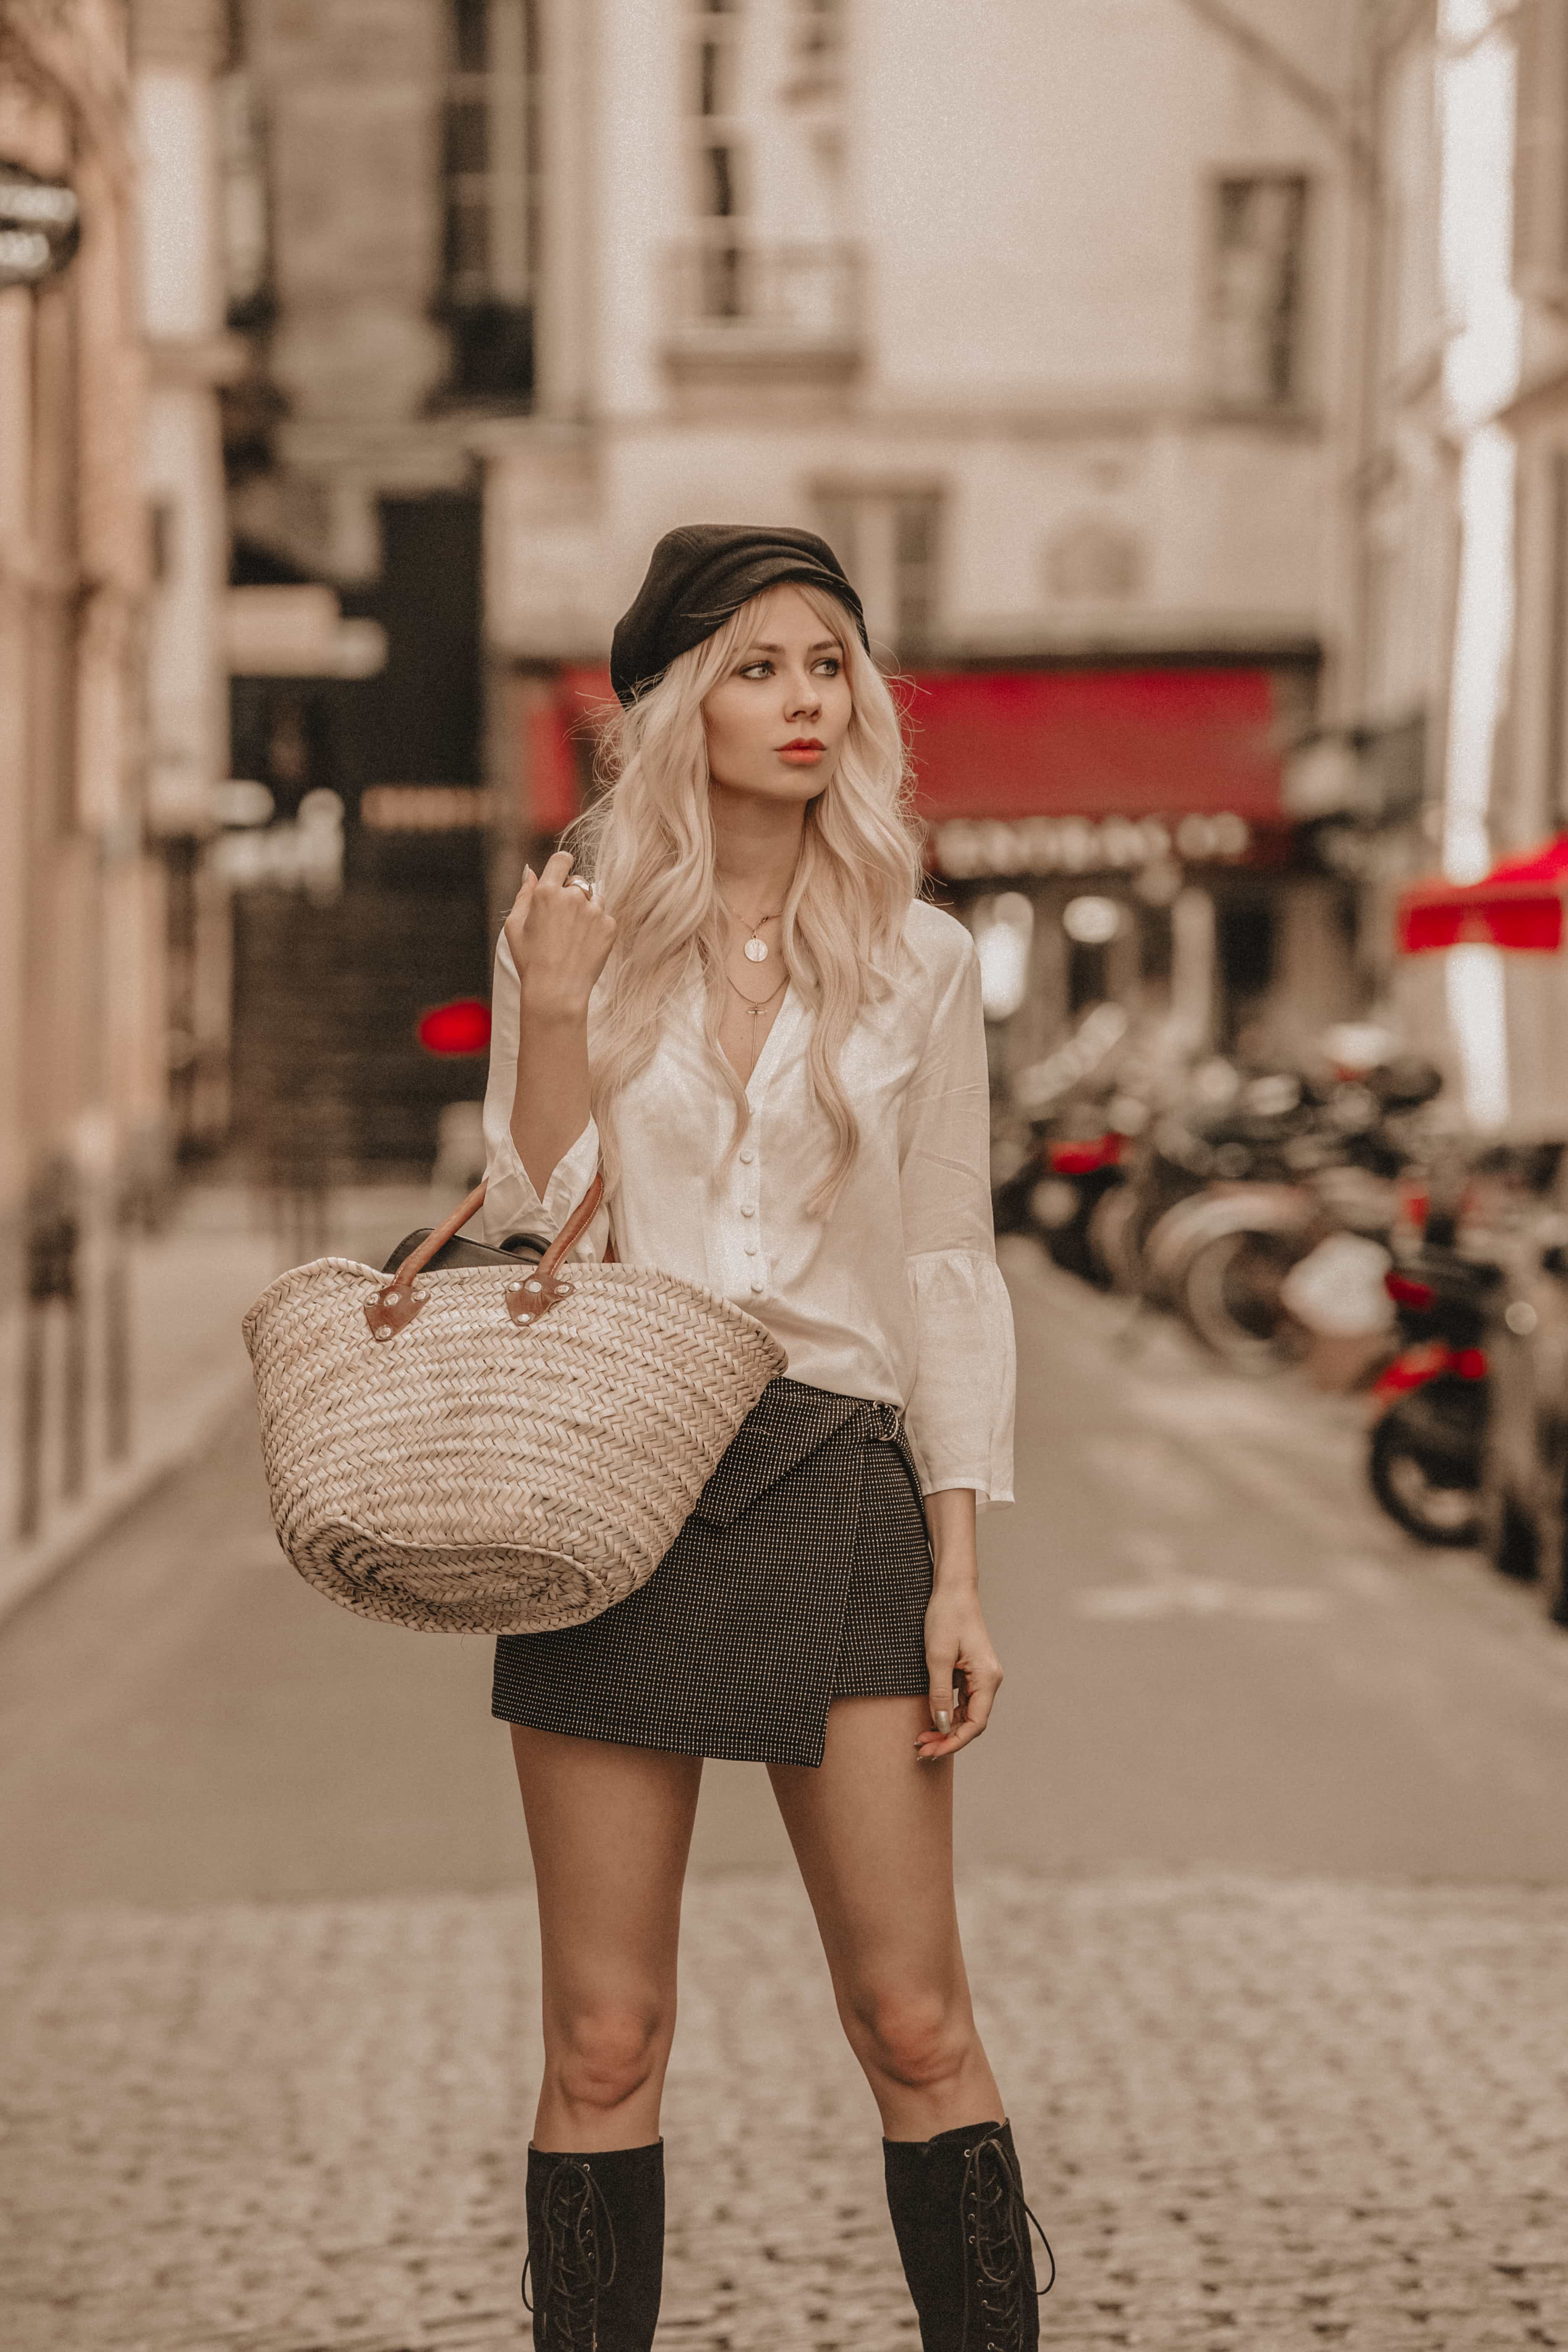 Sarah Loven wearing French style and French basket